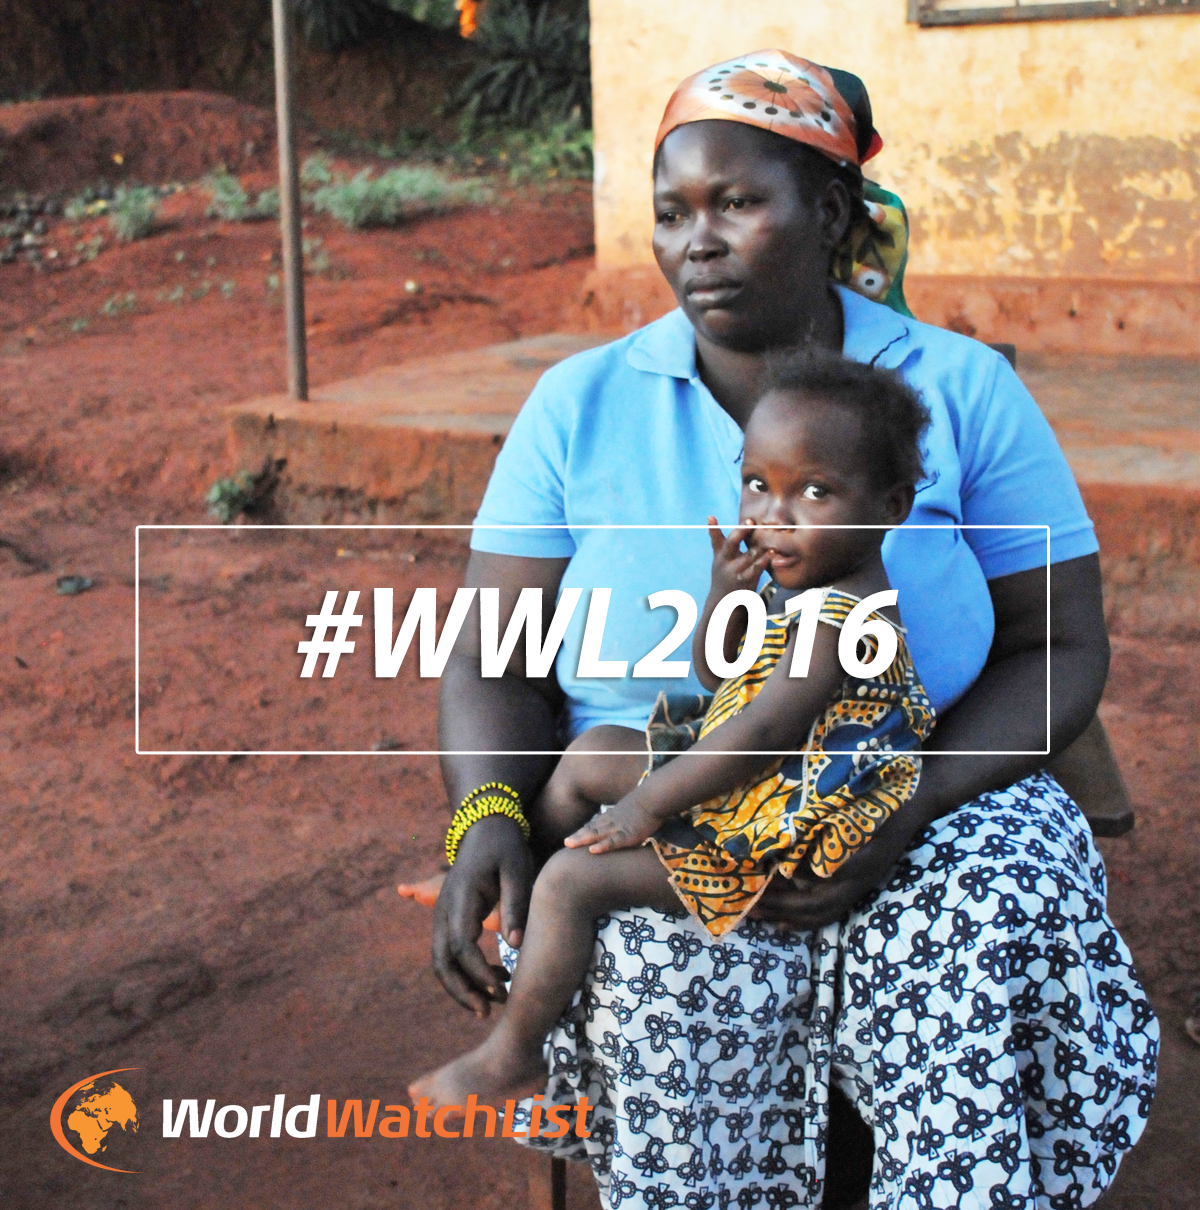 On 13 January 2016, Open Doors Southern Africa will release the 2016 World Watch List – the list of the worst places to be a #Christian. This year four #African countries were ranked under the Top 10.  Which country do you think will definitely be in the Top 10 of worst places to be a Christian?   #WWL2016 #Persecution